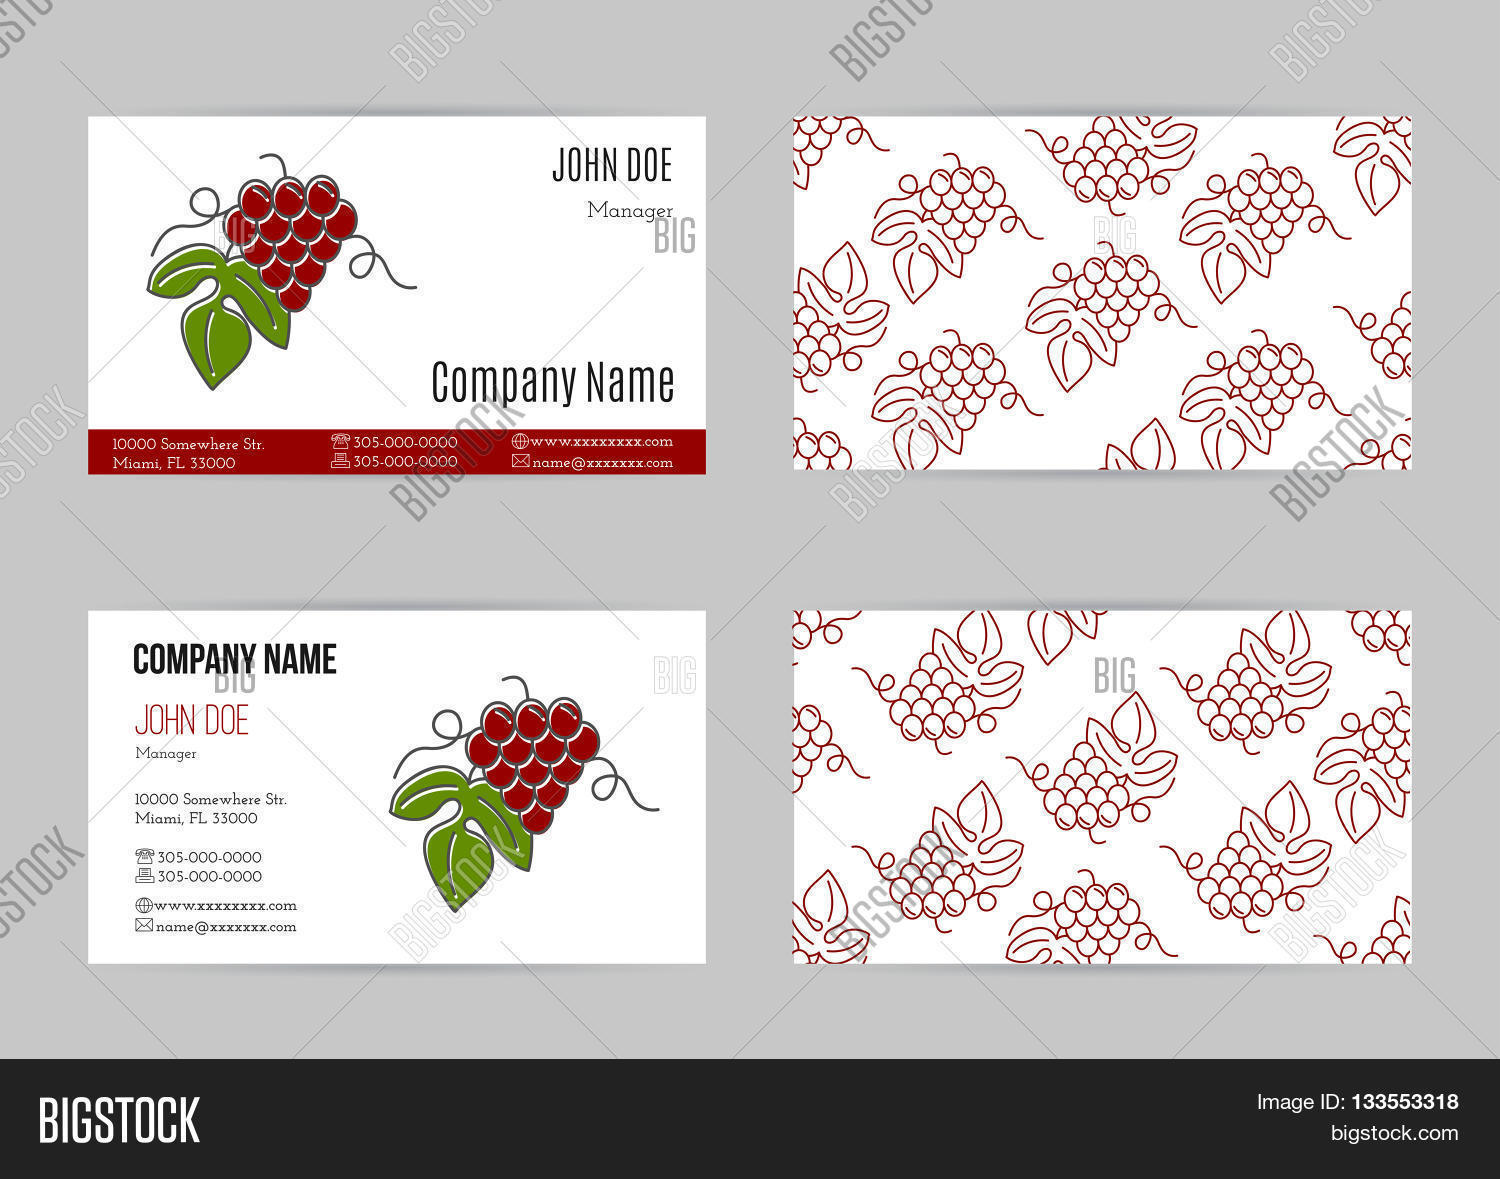 Set business cards vector photo free trial bigstock set of business cards with grapes business card template with logo for restaurant cafe reheart Image collections